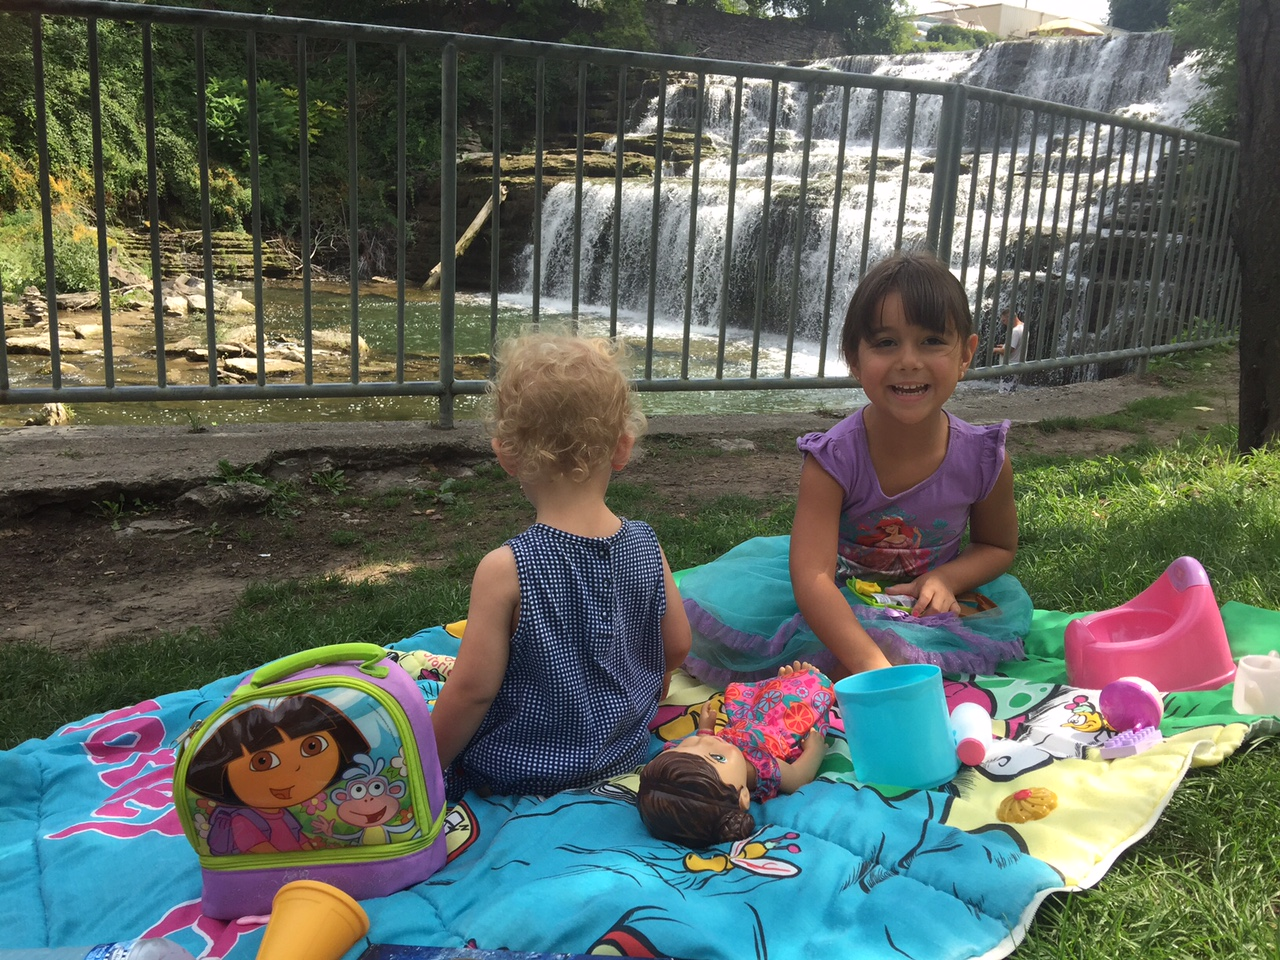 My kids love going on picnics. We always bring a few toys, books and dolls to help pass time. Mary Friona-Celani/Special to The News